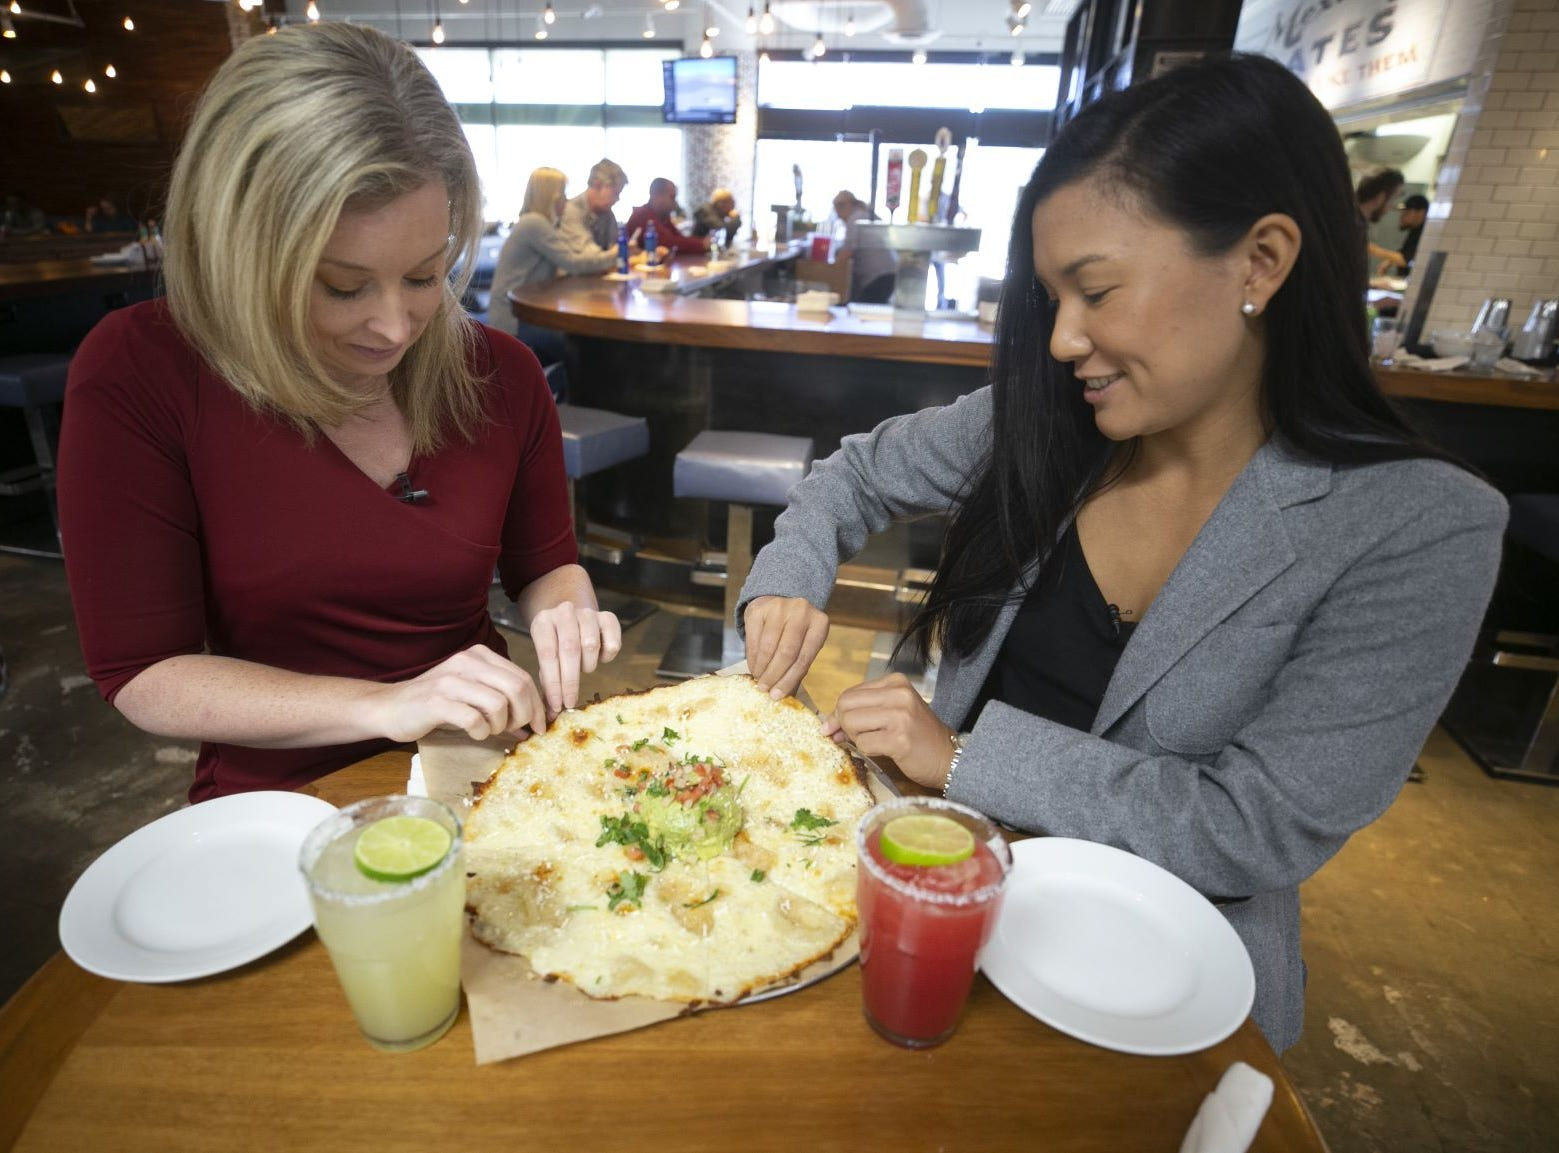 Melissa Yeager, (left) Arizona Republic and azcentral consumer and travel reporter and Lauren Saria, Arizona Republic and azcentral food and dining reporter taste the Cheese Crisp at Blanco Tacos in Terminal Four of Phoenix Sky Harbor International Airport on Tuesday, November 13, 2018.